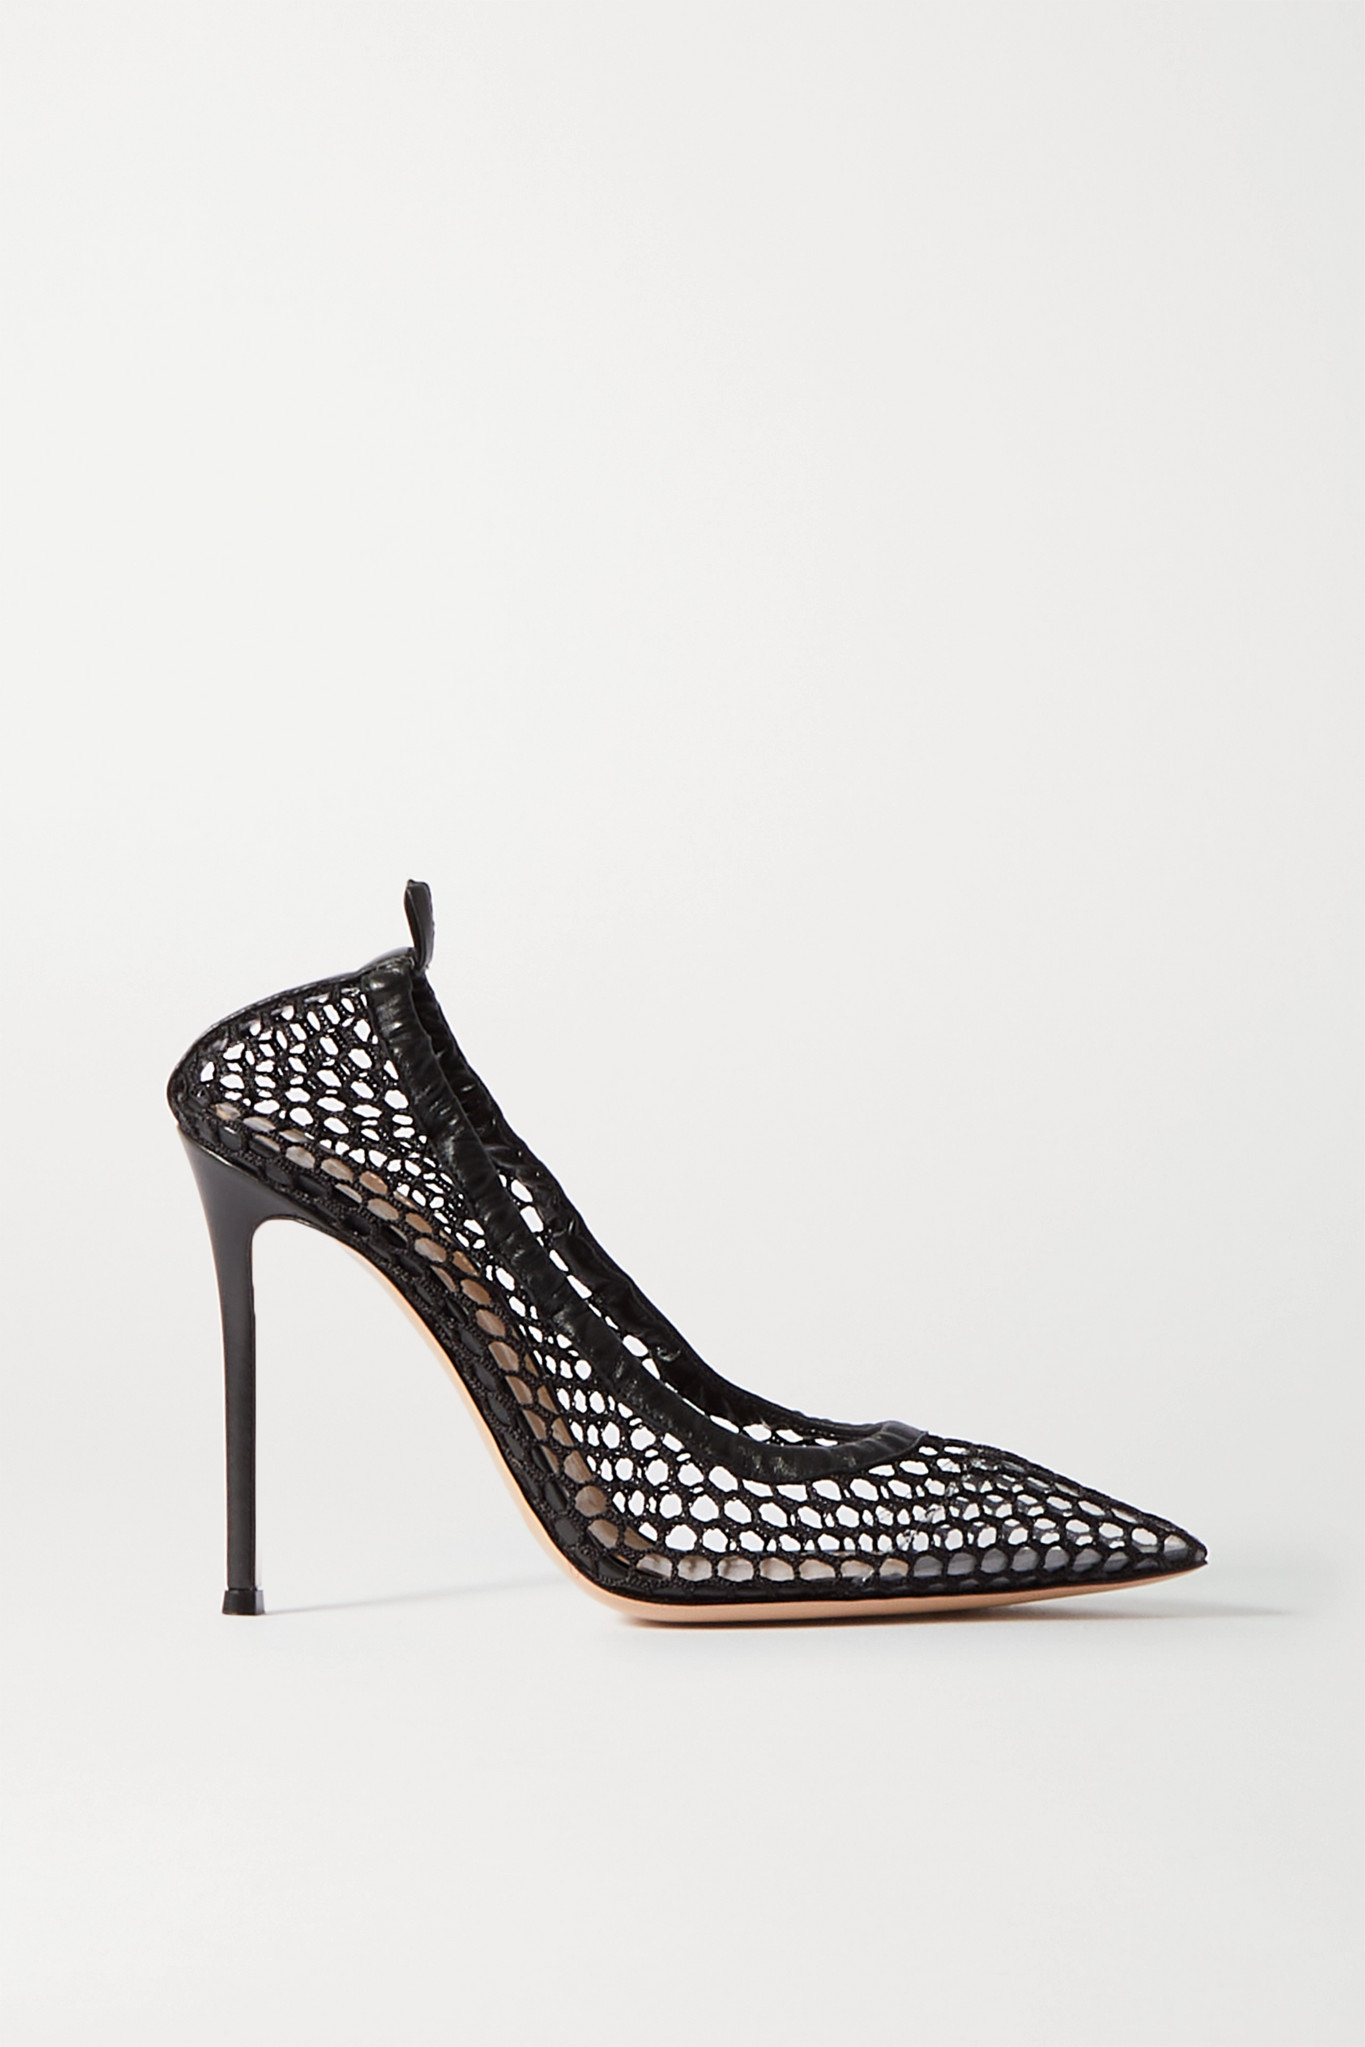 GIANVITO ROSSI - 105 Leather-trimmed Fishnet Pumps - Black - IT39.5